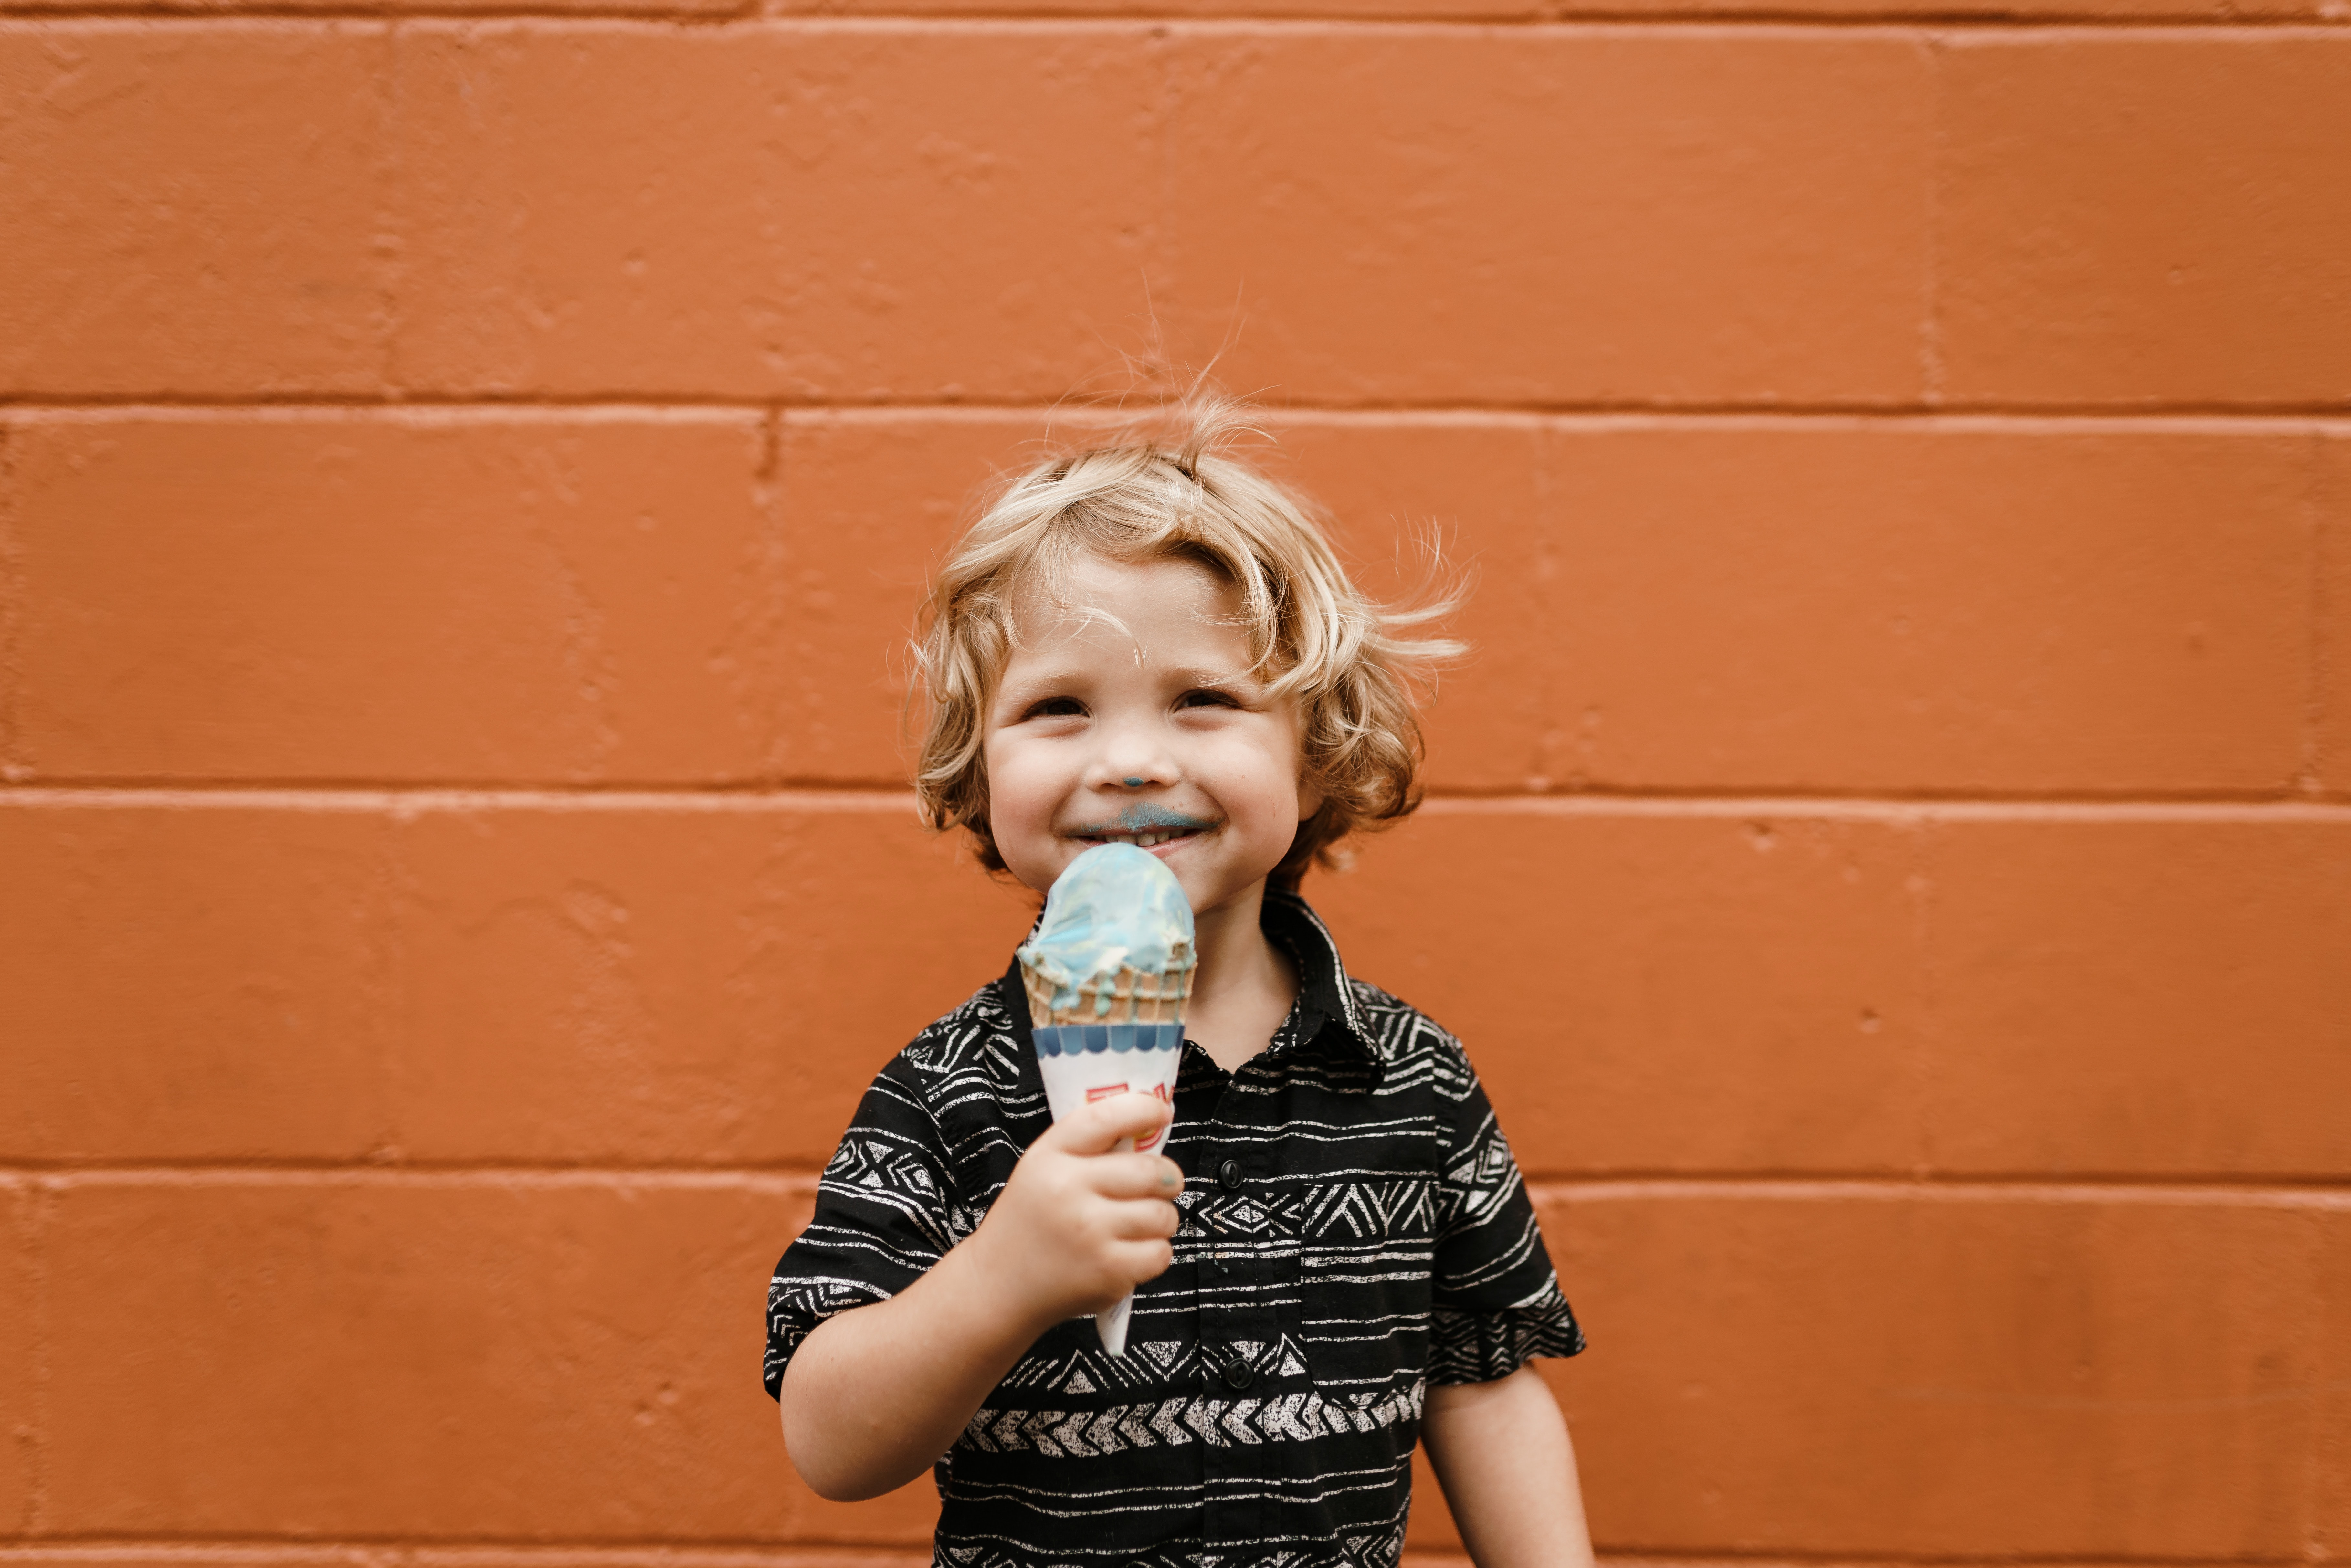 boy holding ice cream